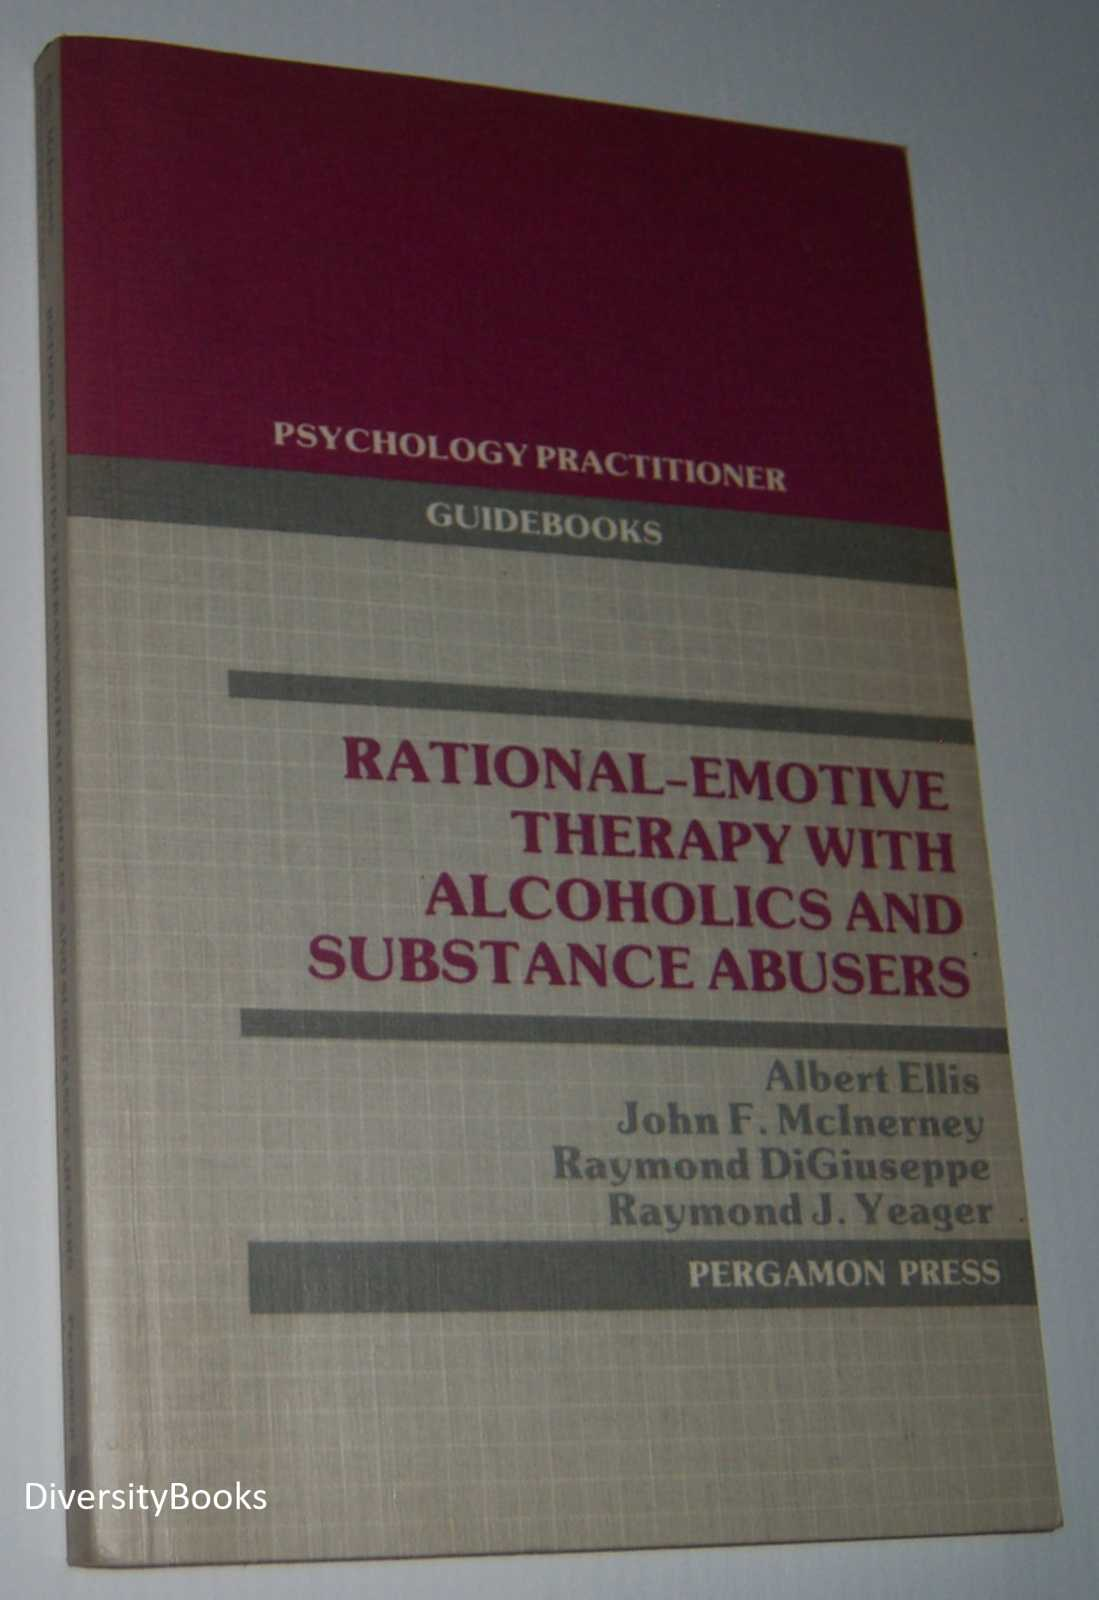 Image for RATIONAL-EMOTIVE THERAPY WITH ALCOHOLICS AND SUBSTANCE ABUSERS